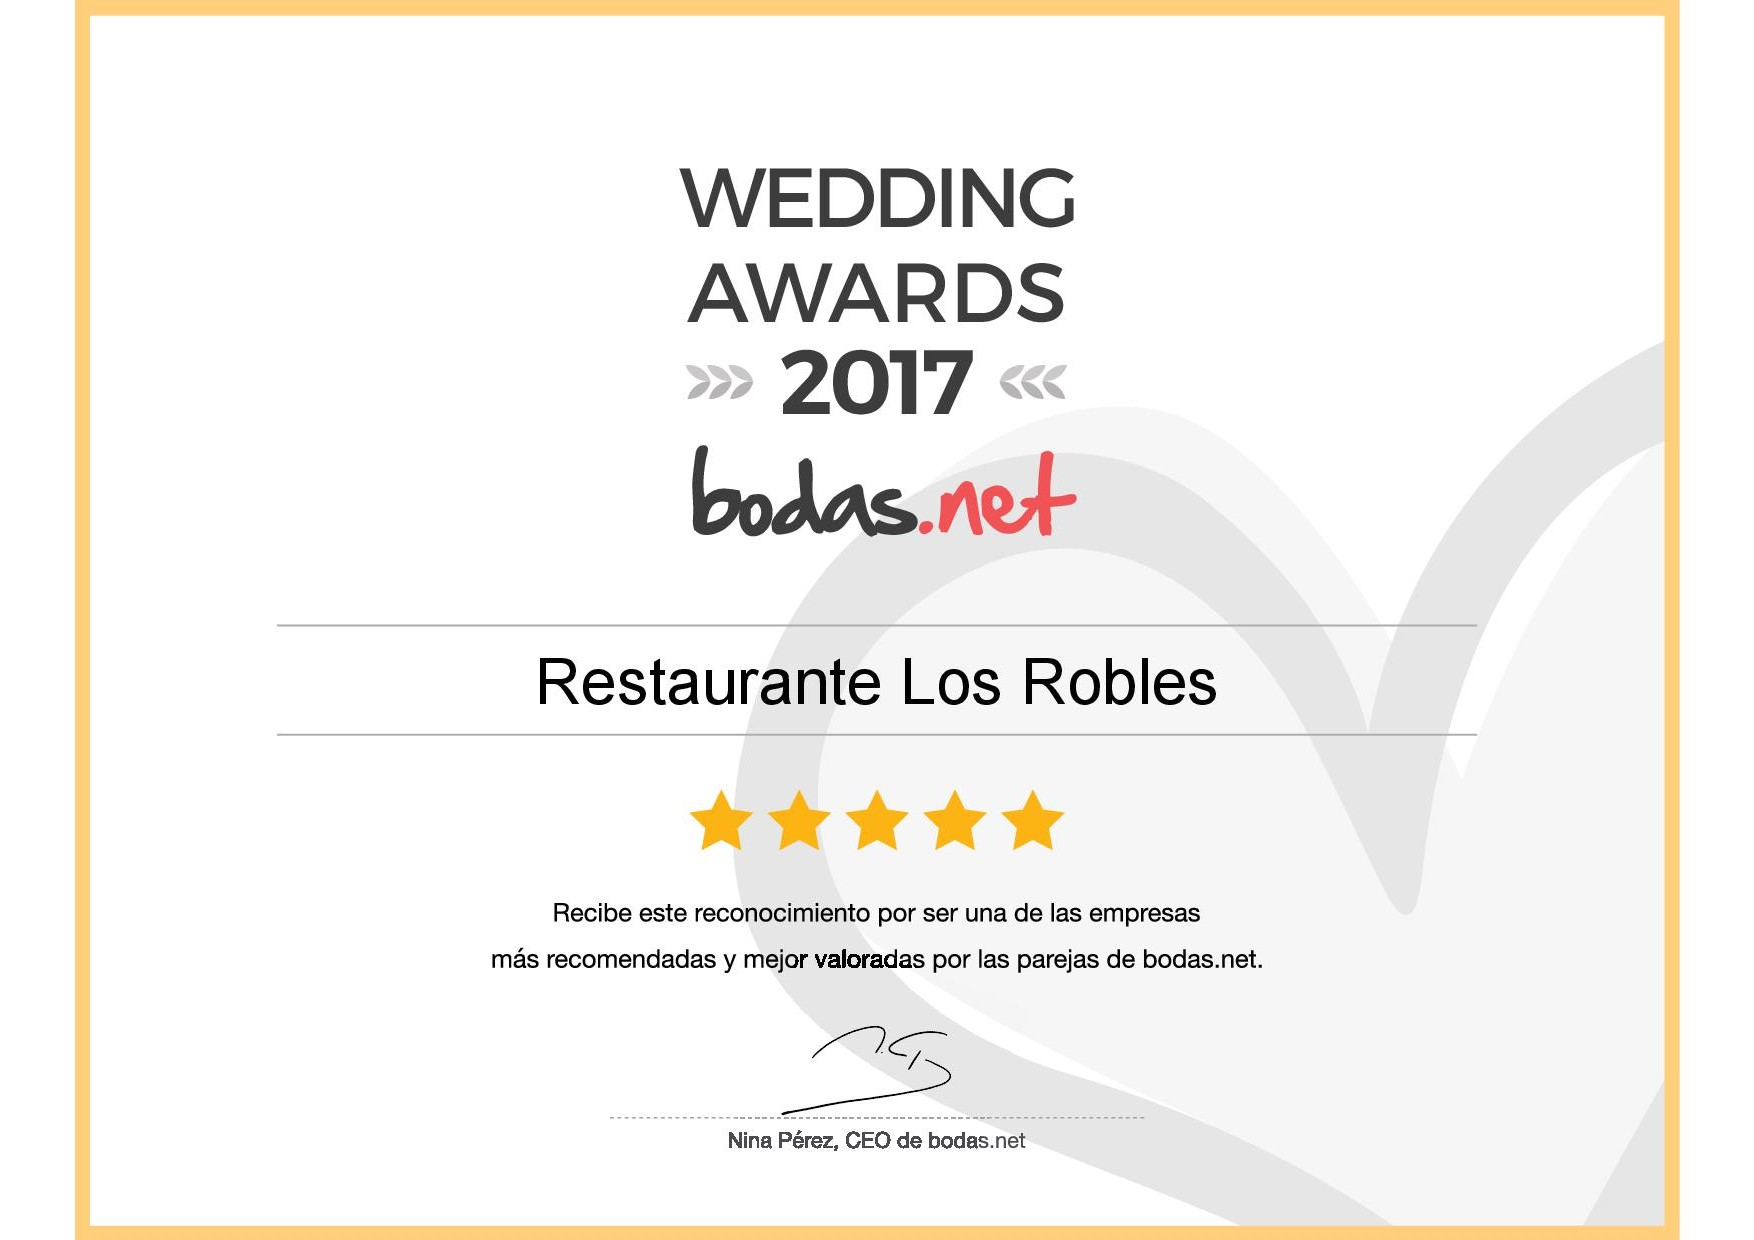 Restaurante Los Robles, ganador Wedding Awards 2017 bodas.net